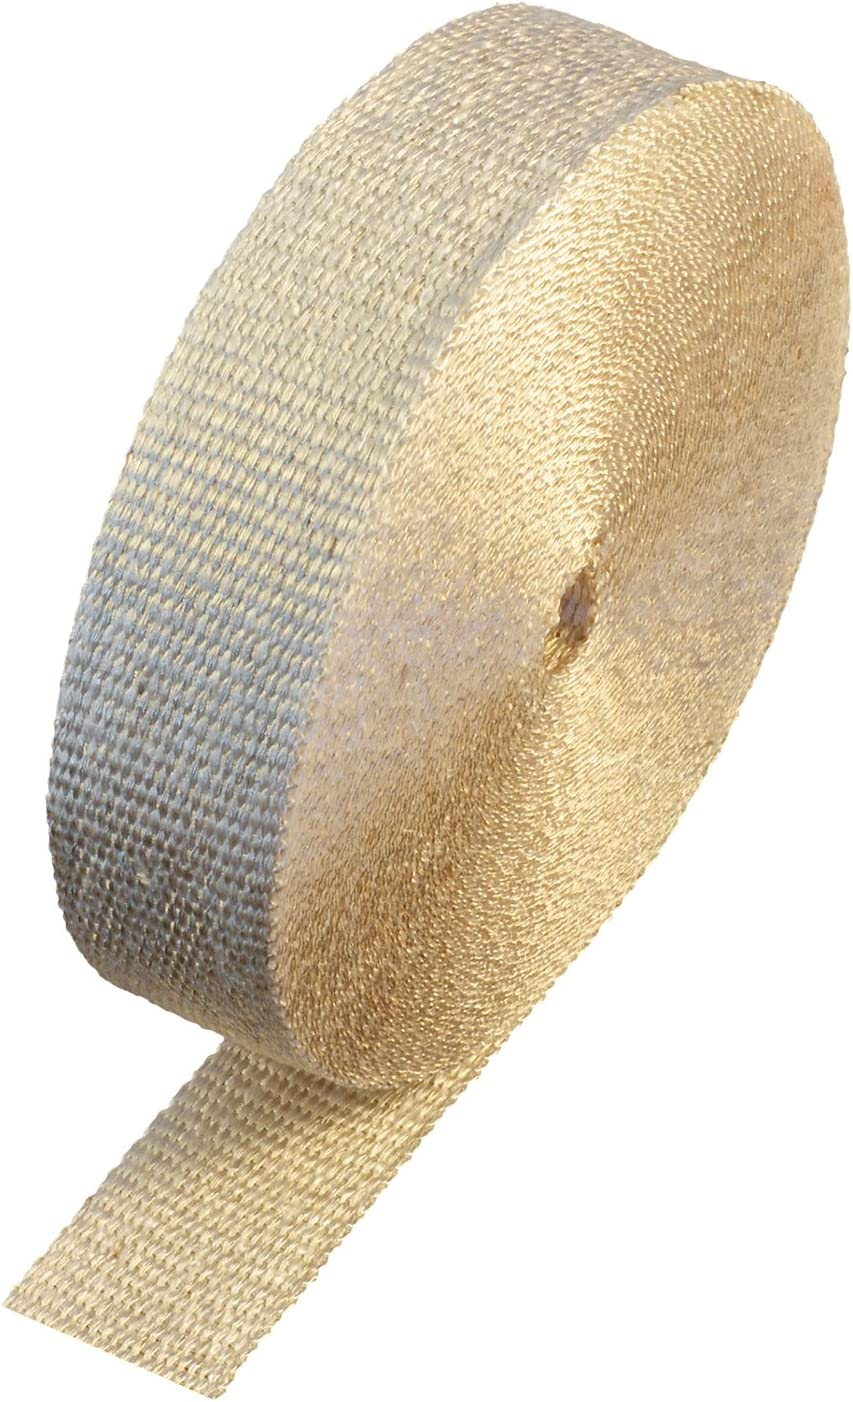 Off White 2x50 Roll Header Exhaust Wrap Heatshield Products HD32522 1//16 Thick